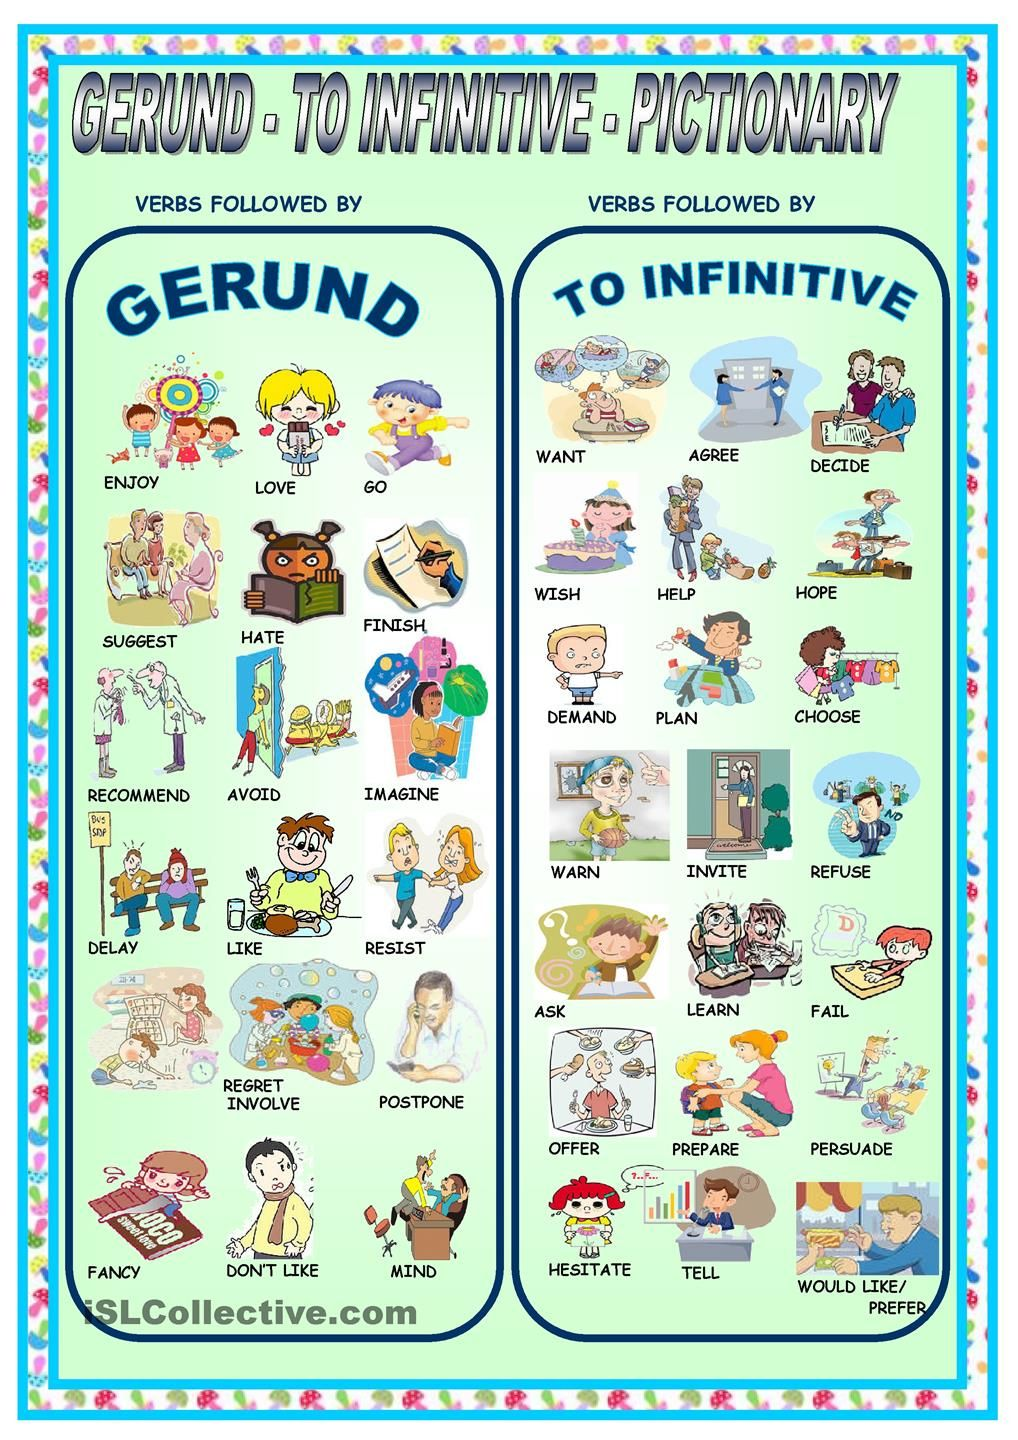 GERUND TO INFINITIVE PICTIONARY ESL Intermediate – Gerund Worksheet